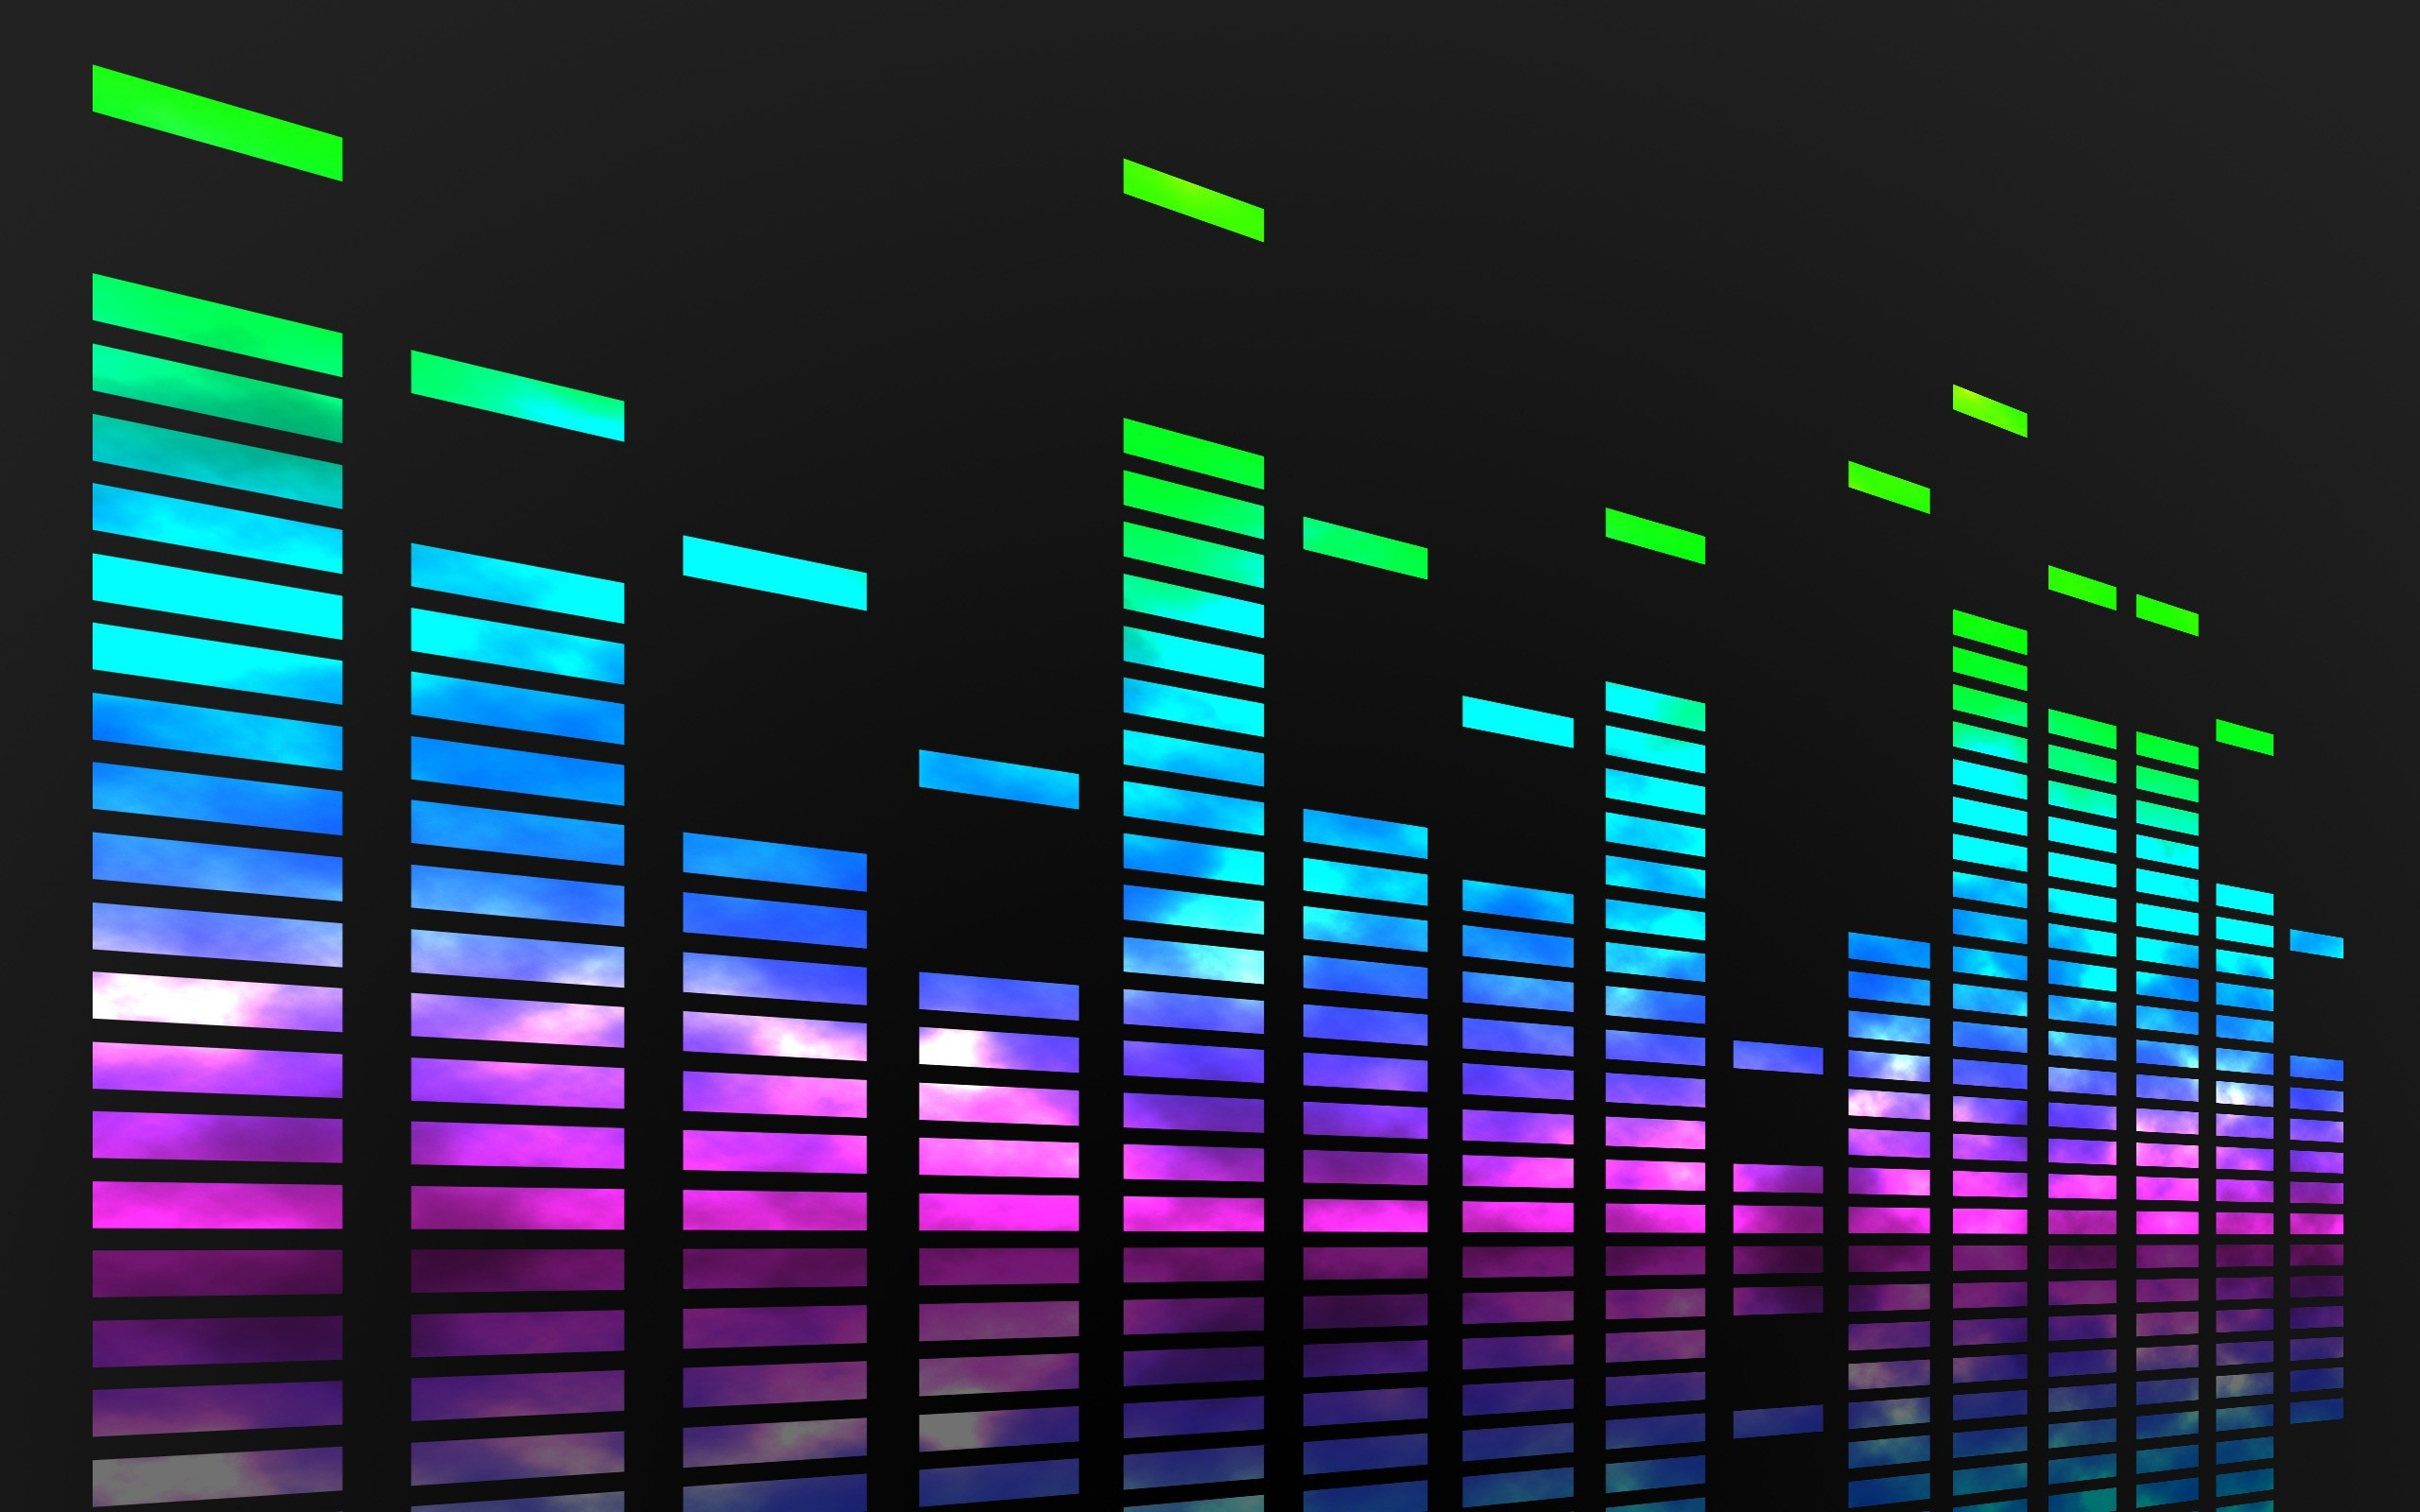 2560x1600 Equalizer music wallpaper hd resolution music bars wallpapers